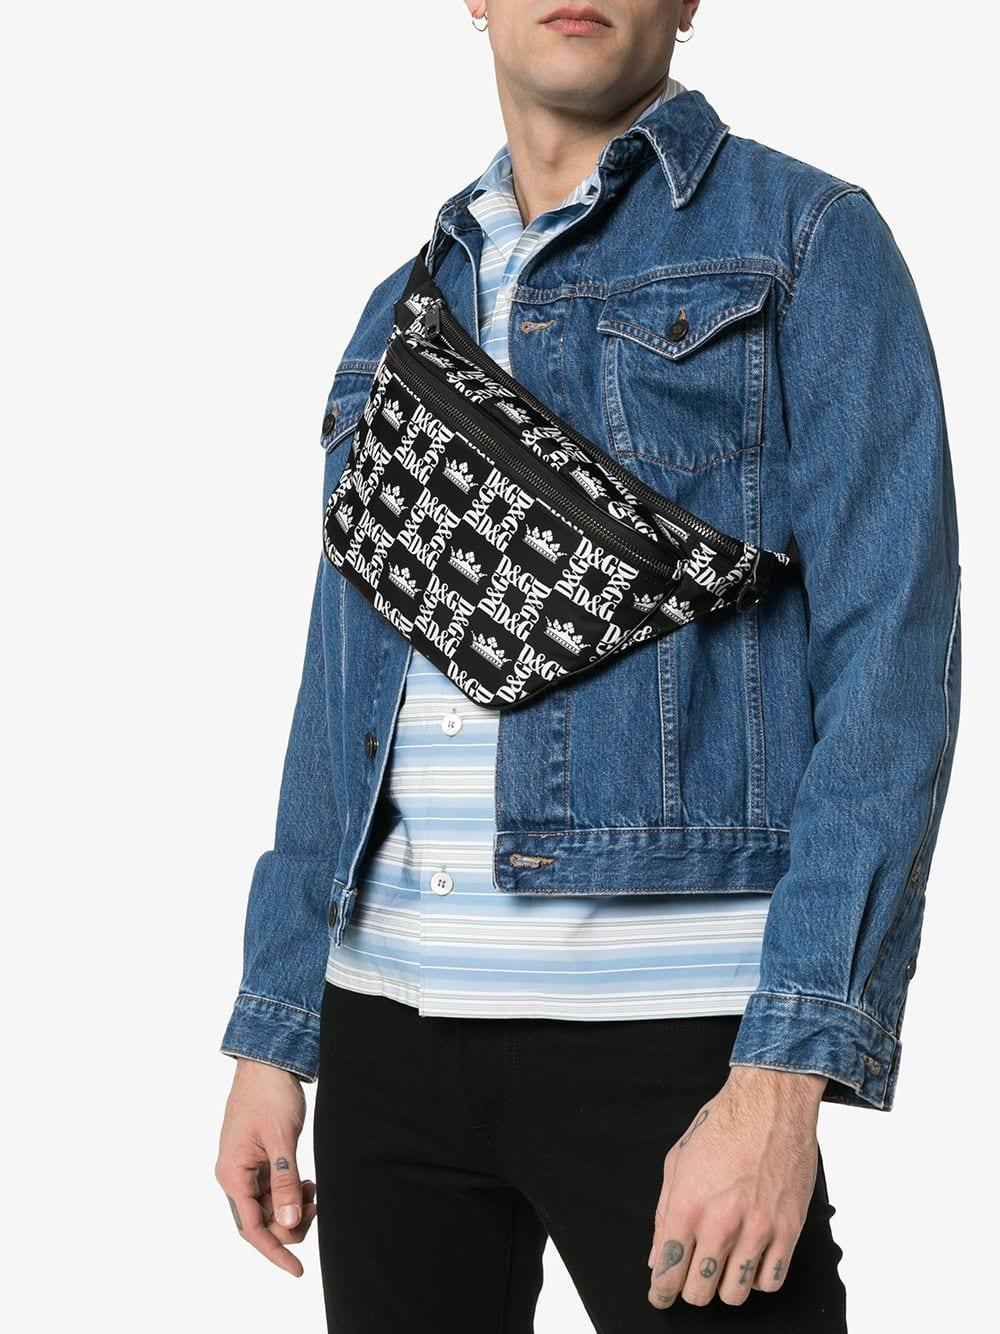 70407a63ee Lyst - Dolce & Gabbana Black And White Logo Crown Print Cross Body Bag in  Black for Men